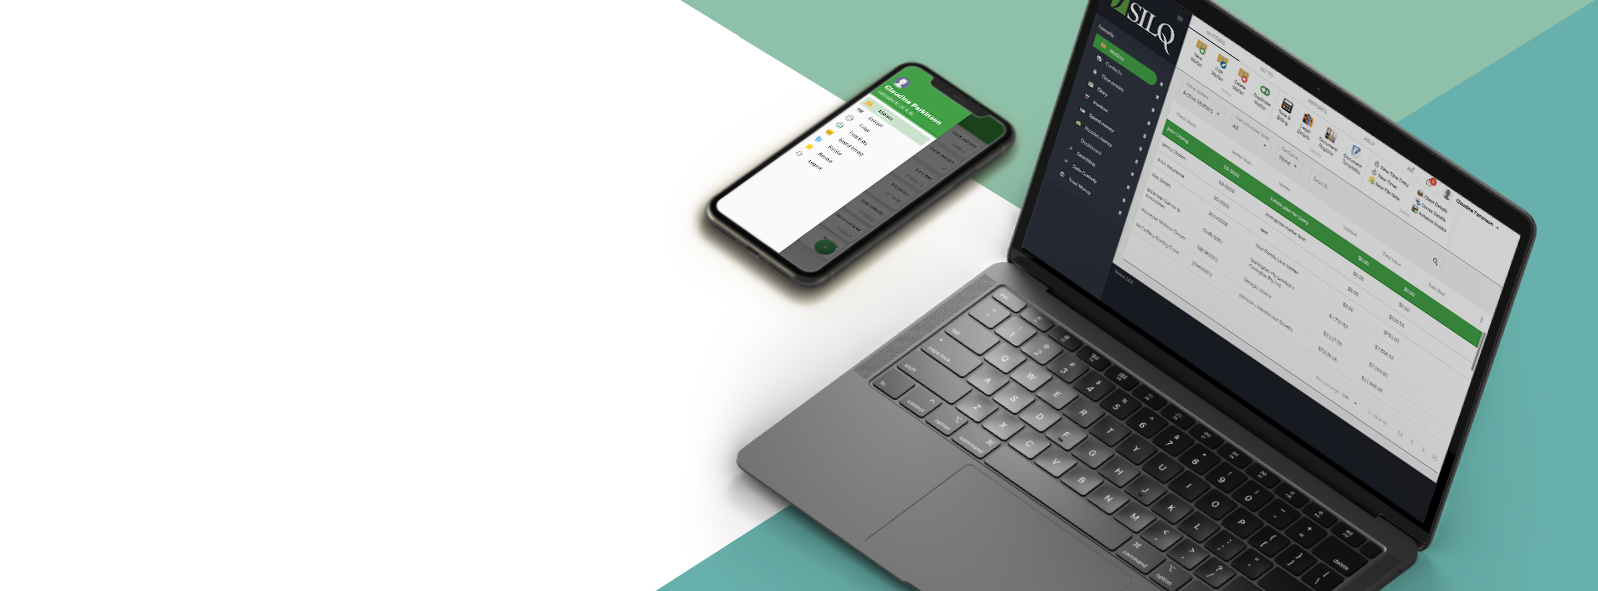 silq solicitor laptop and mobile with silq legal practice management software matters screen